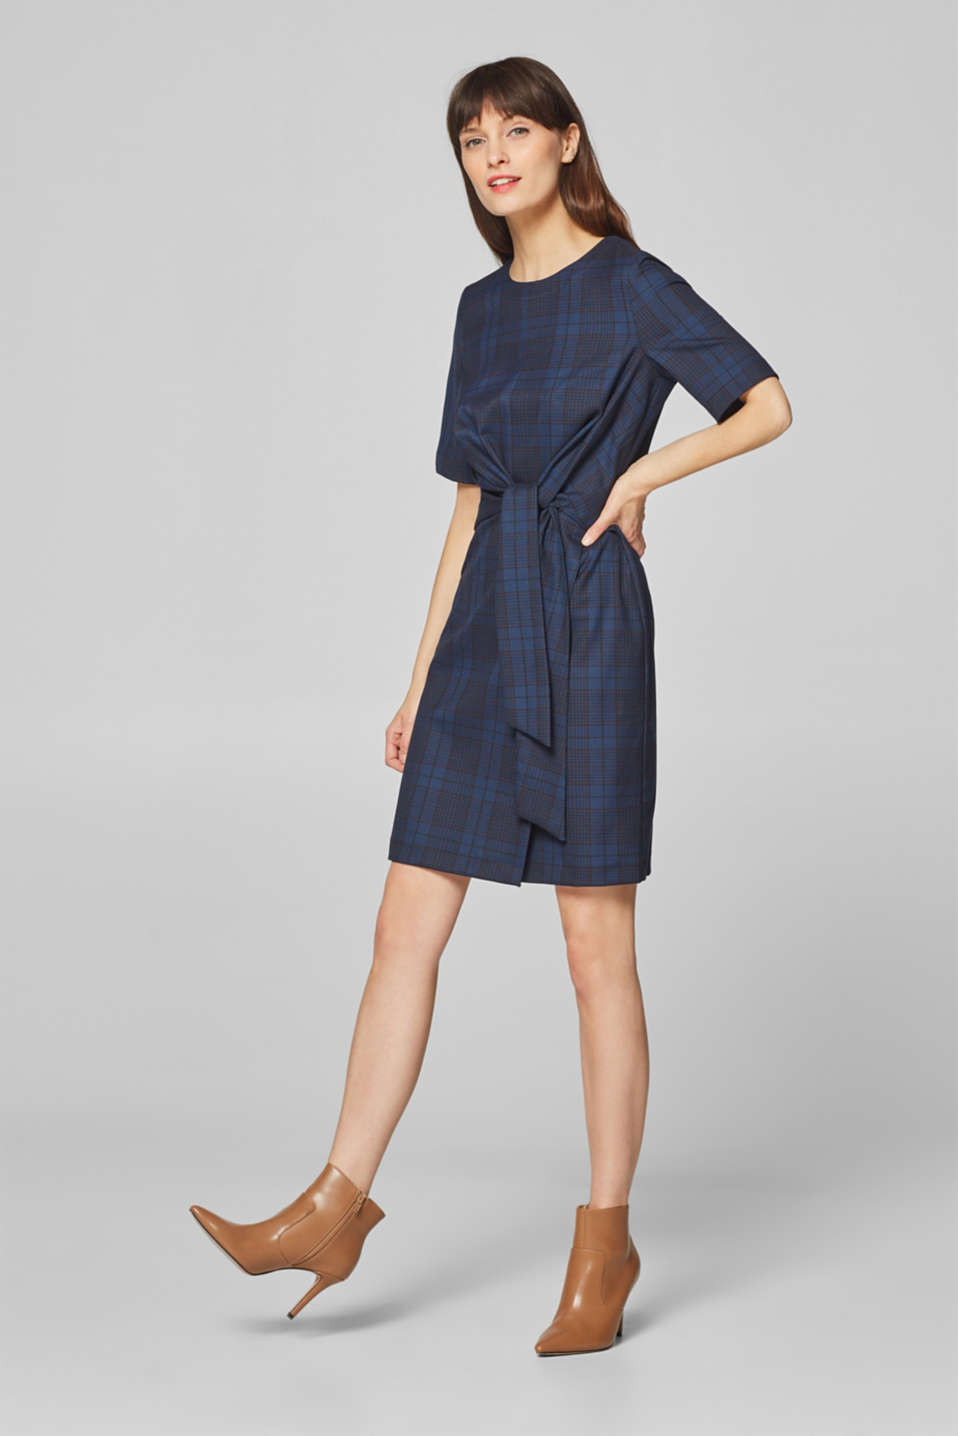 Esprit - Modern check dress with bow ribbons